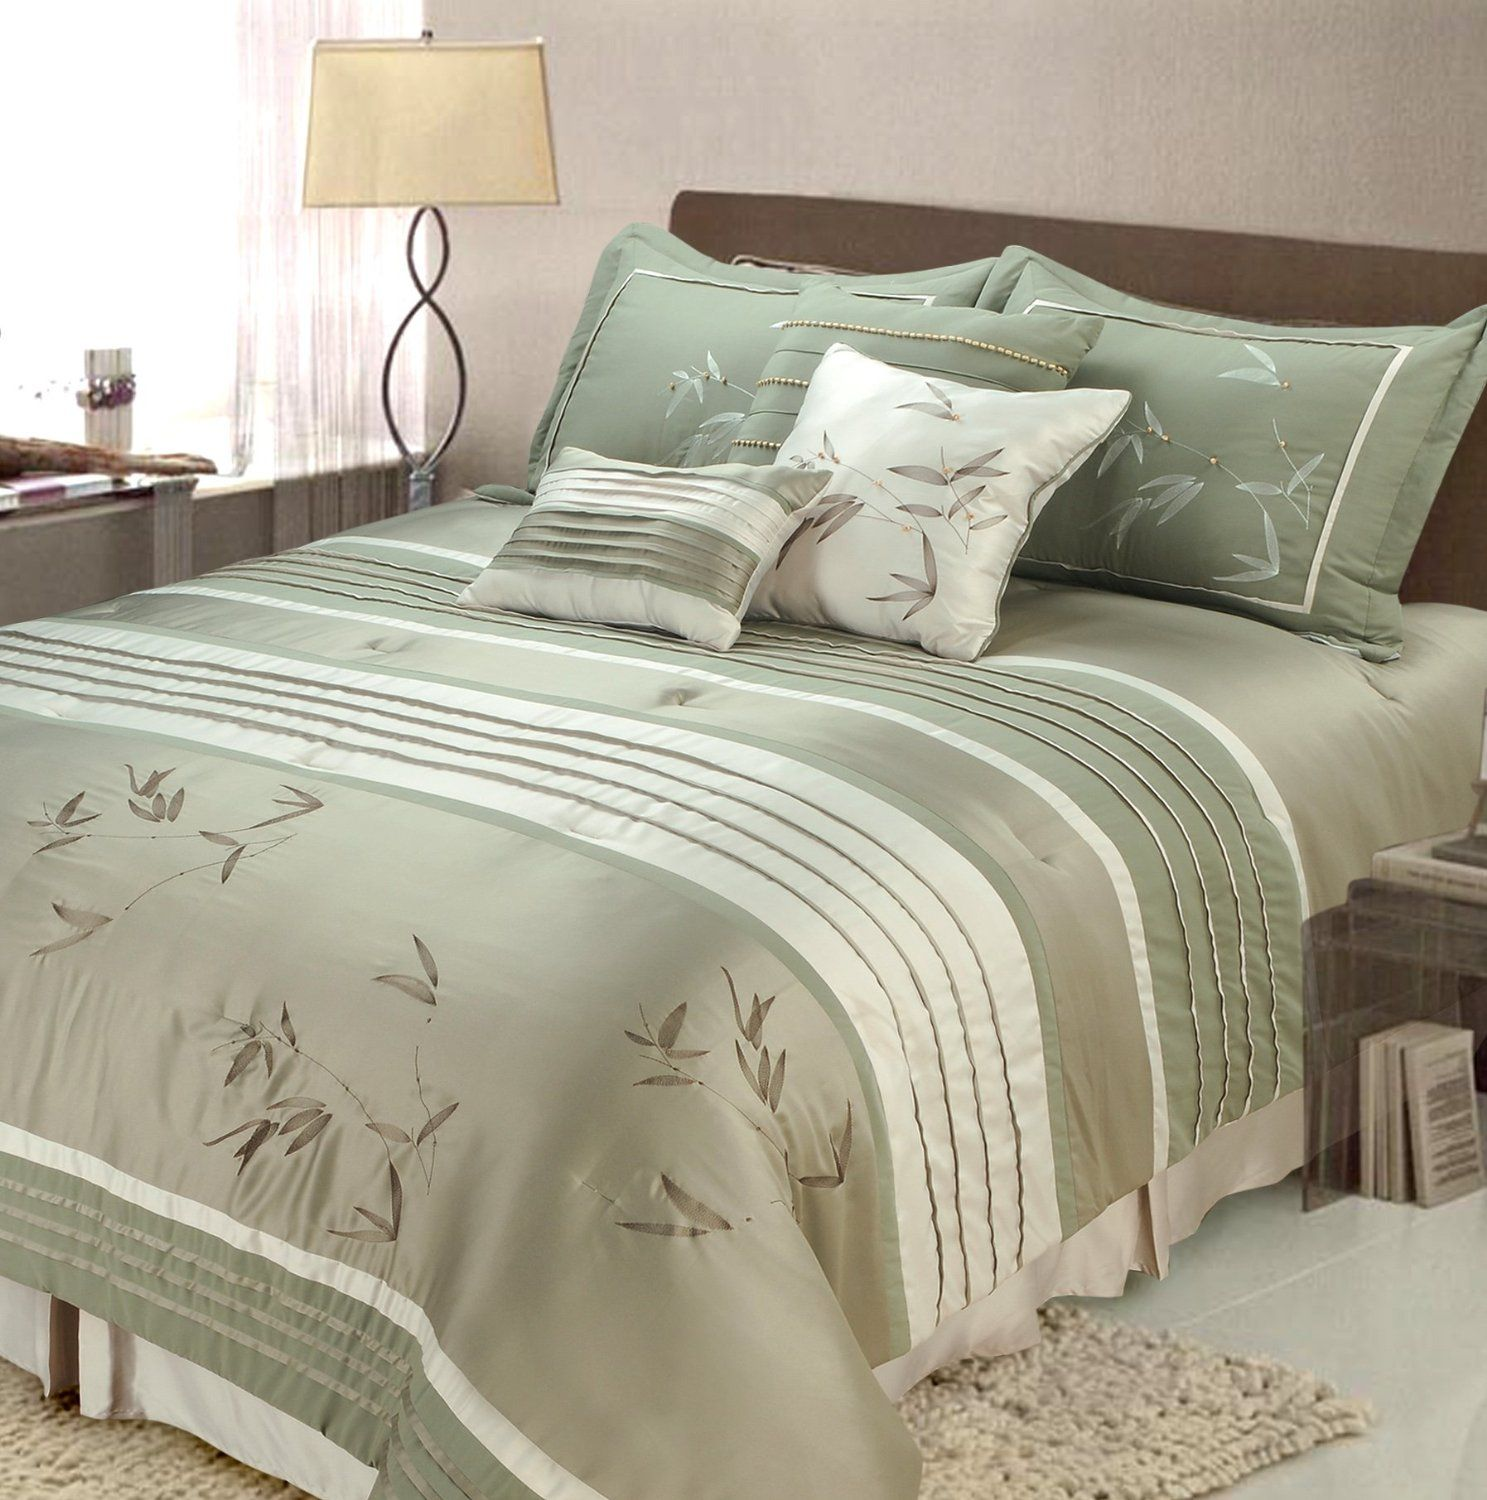 Green Bedding Sets King Size.Bedroom Ideas For Green Bedding Comforter Sets Bedroom Decor